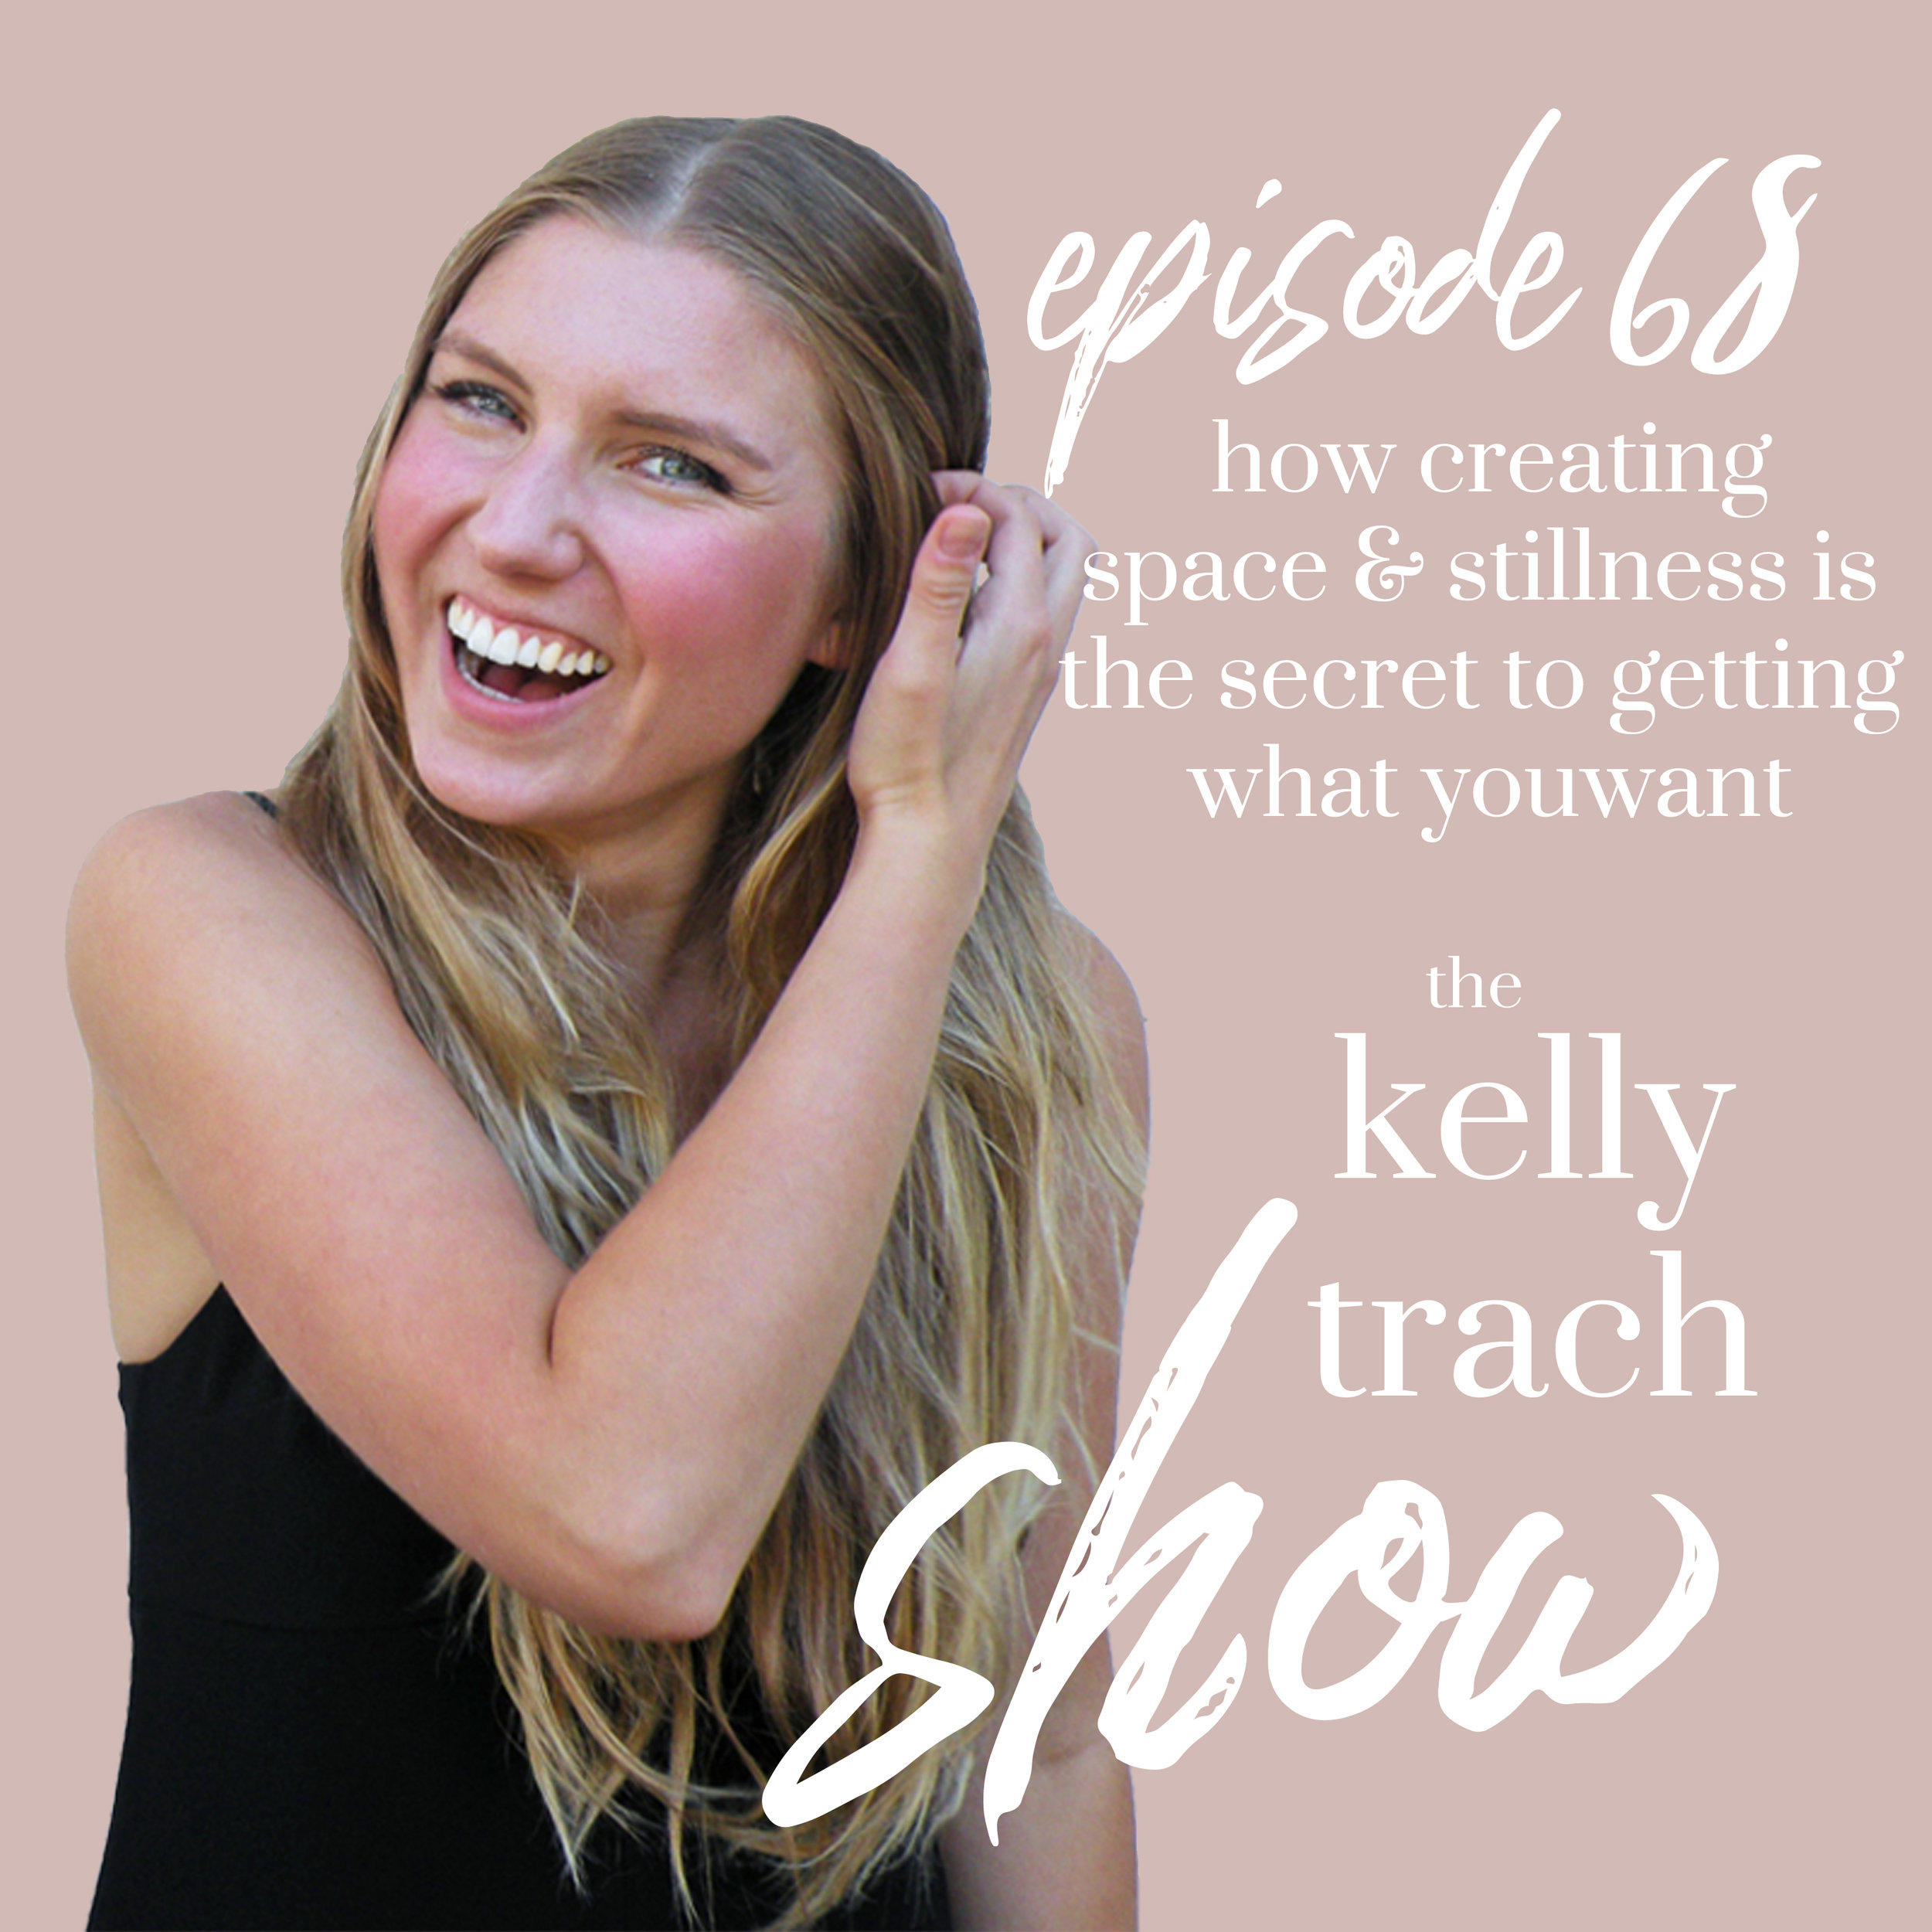 68 - How Creating Space and Stillness is the Secret to Getting What You Want - The Kelly Trach Show Podcast.jpg